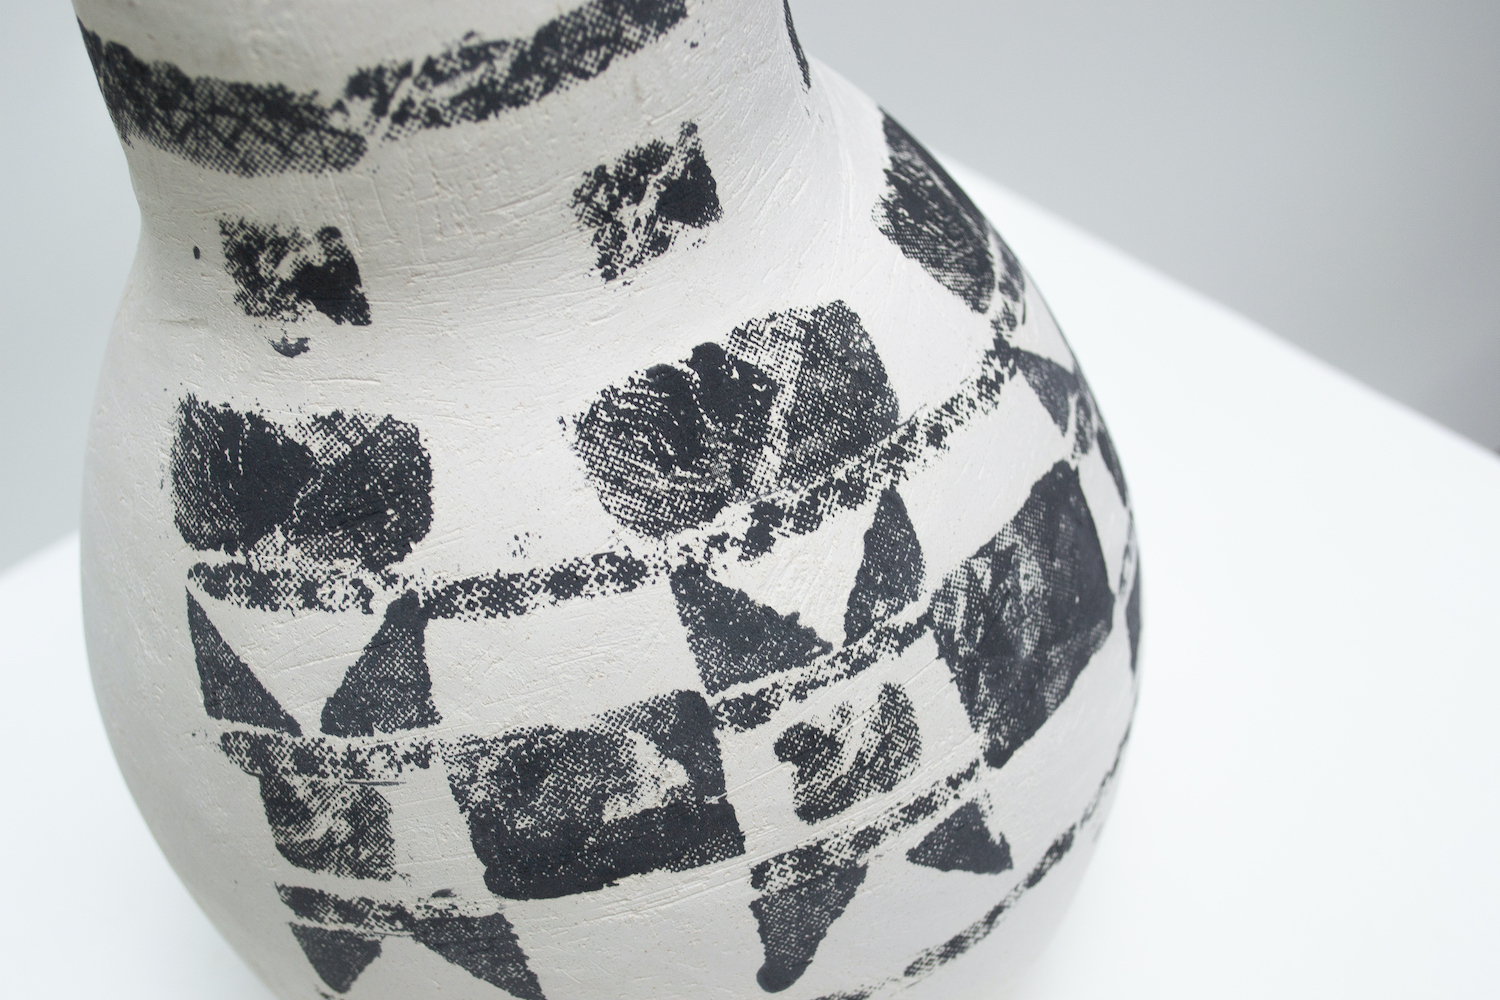 quiltedvessels-16 Hannah deJonge / To Sash and Bind (Detail) - Screen-printed underglaze on stoneware 2020